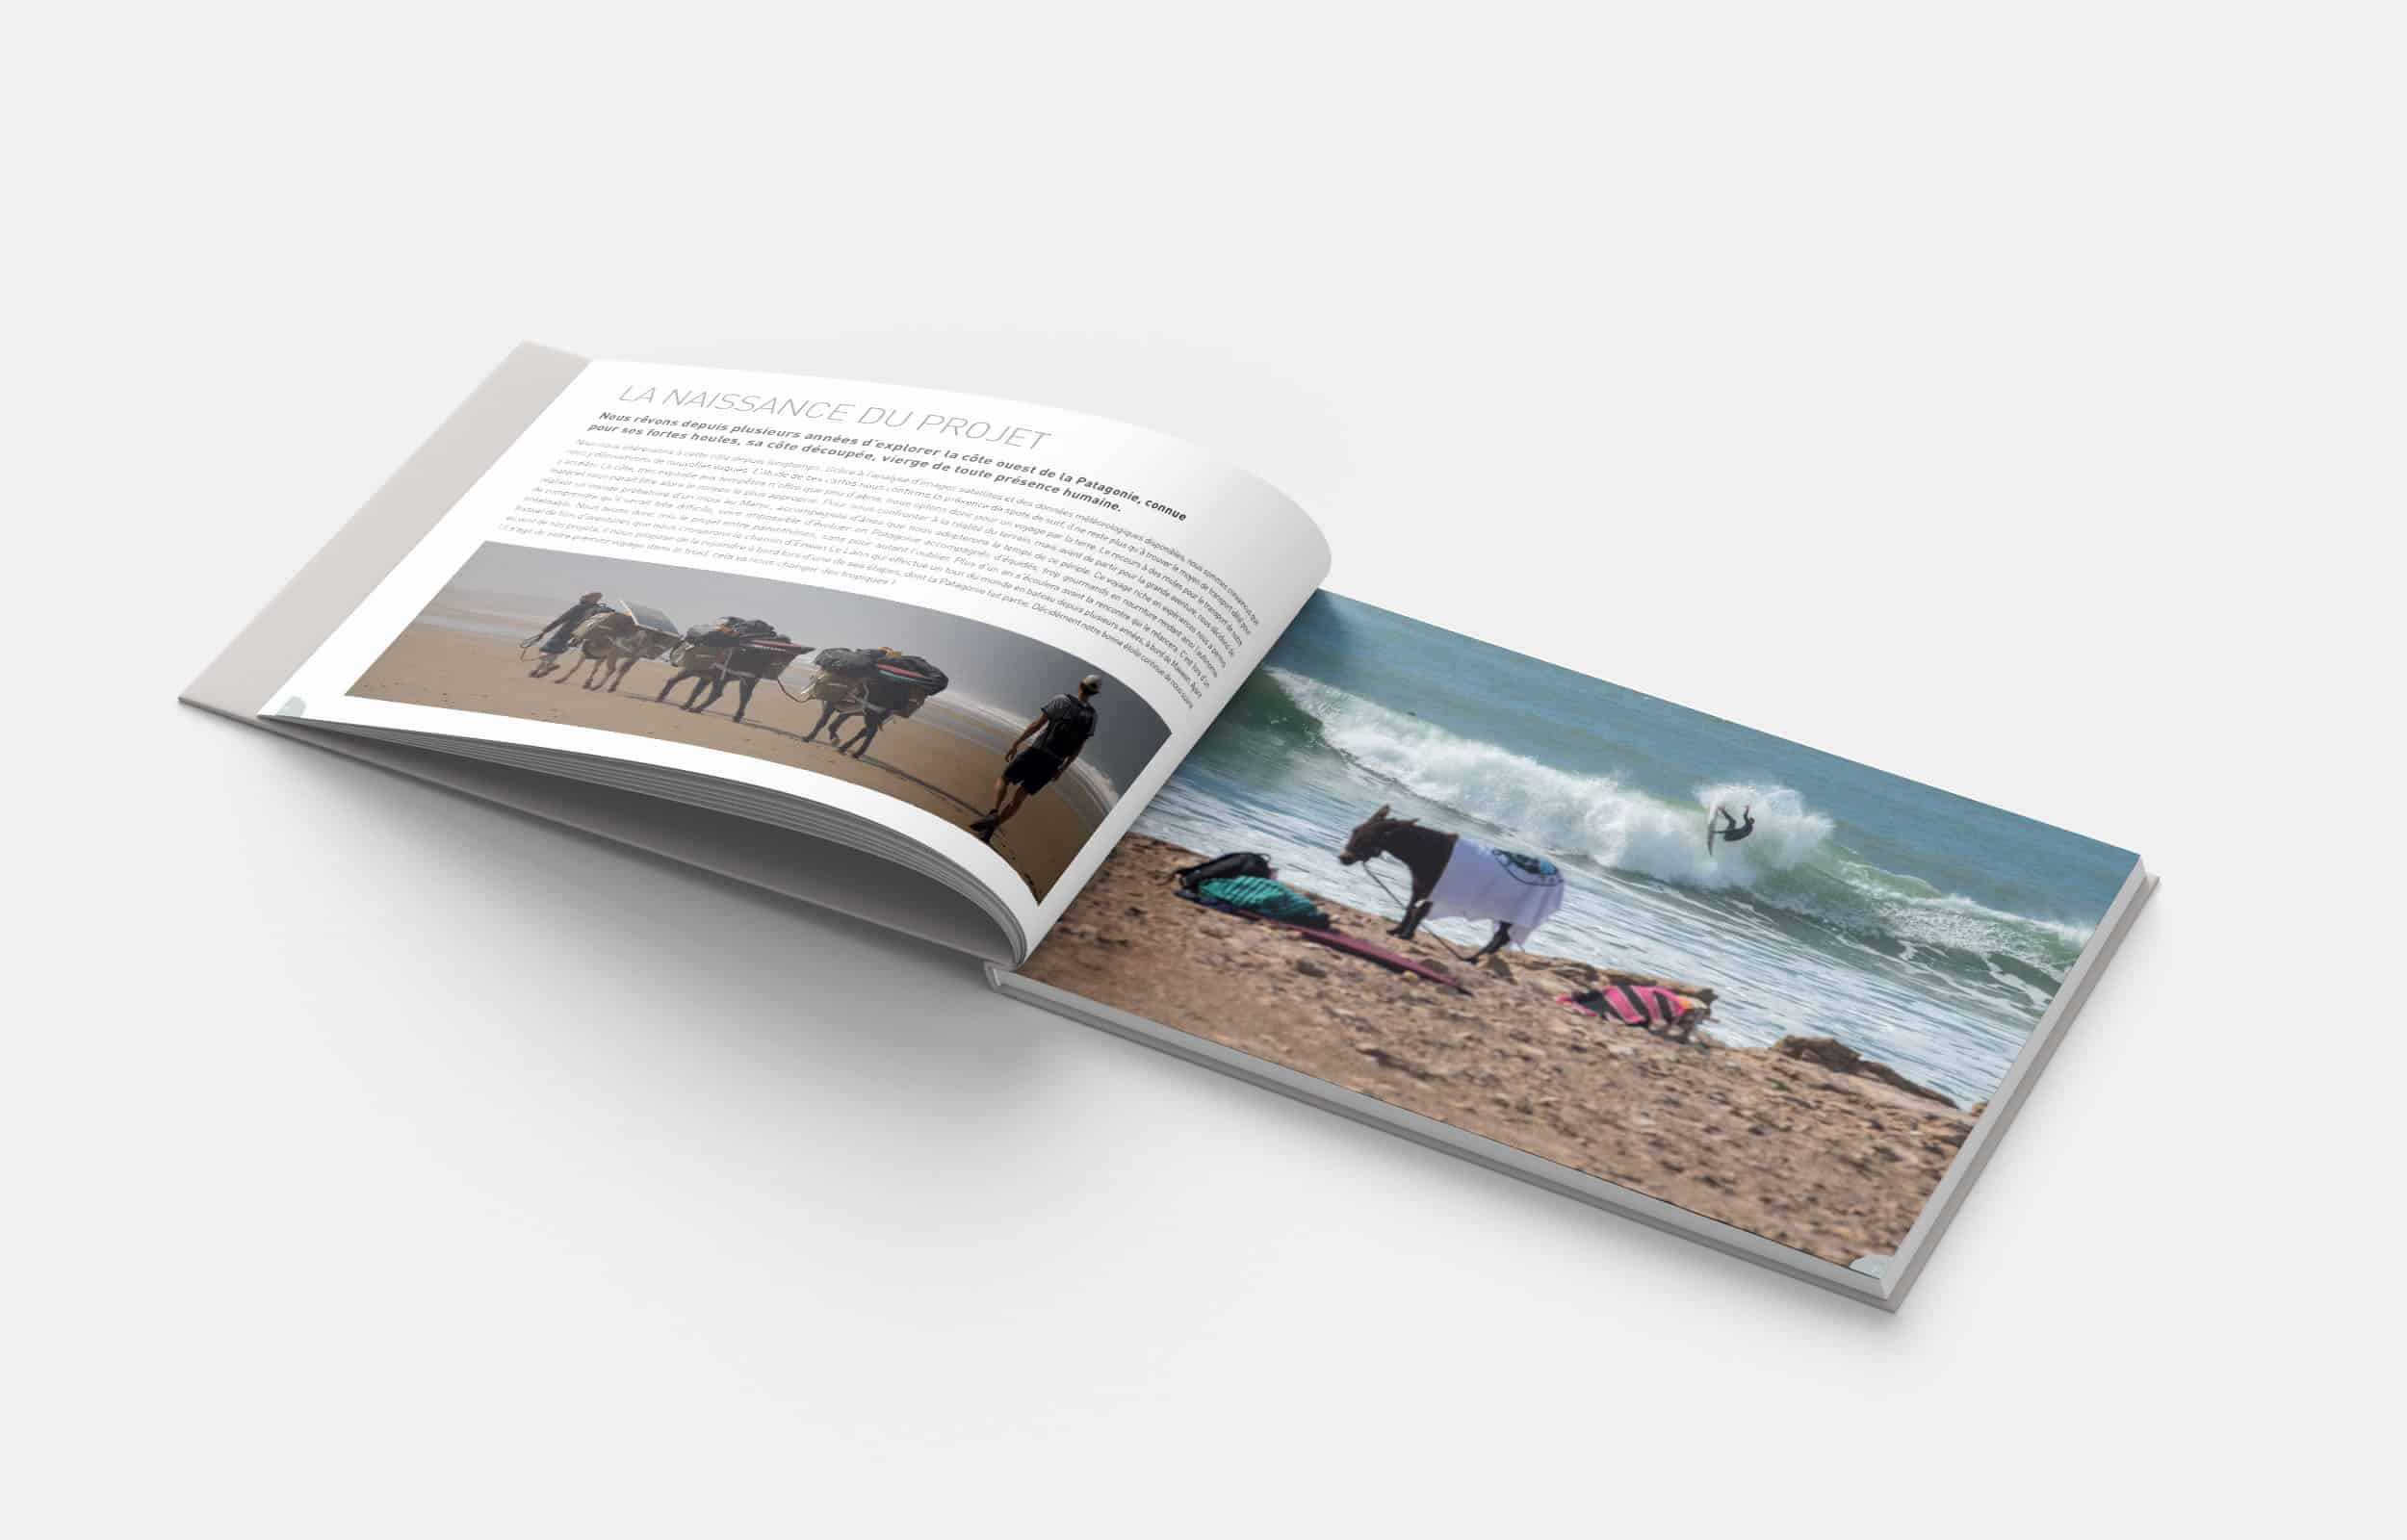 Lost in the swell – Livre